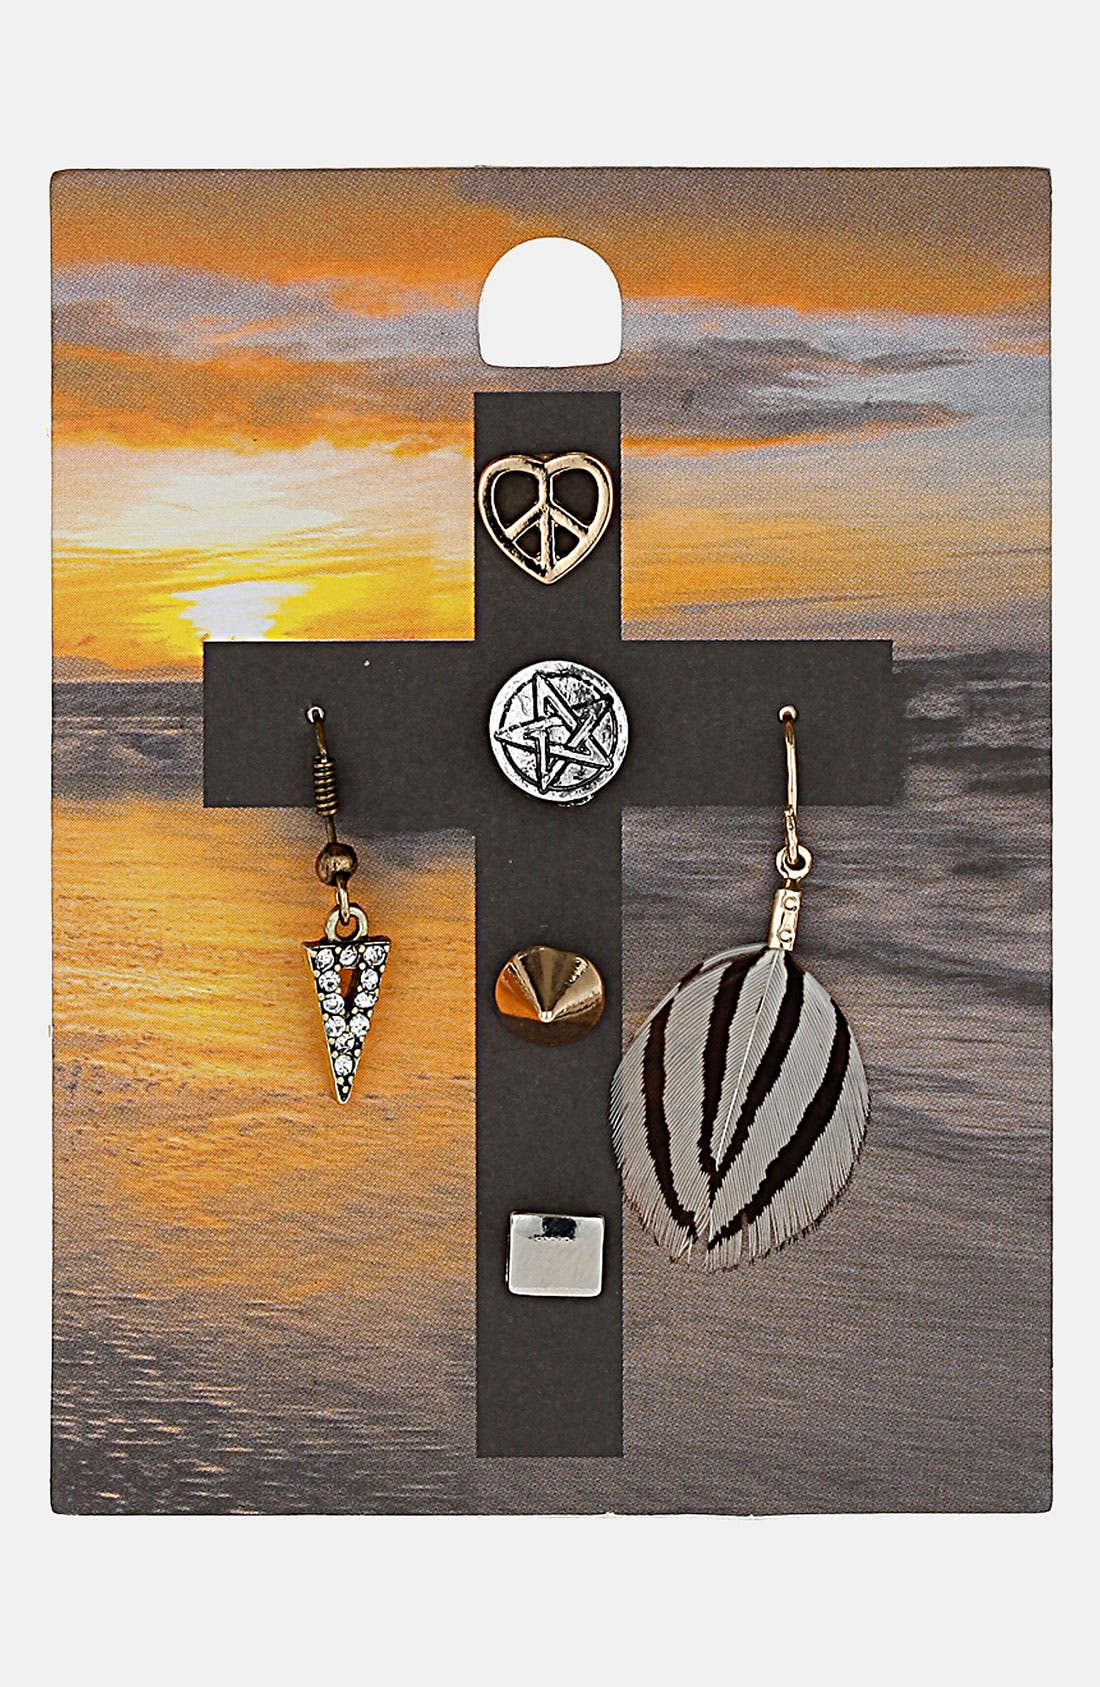 Alternate Image 1 Selected - Topshop 'Cross Earth Child' Assorted Earrings (Set of 6)